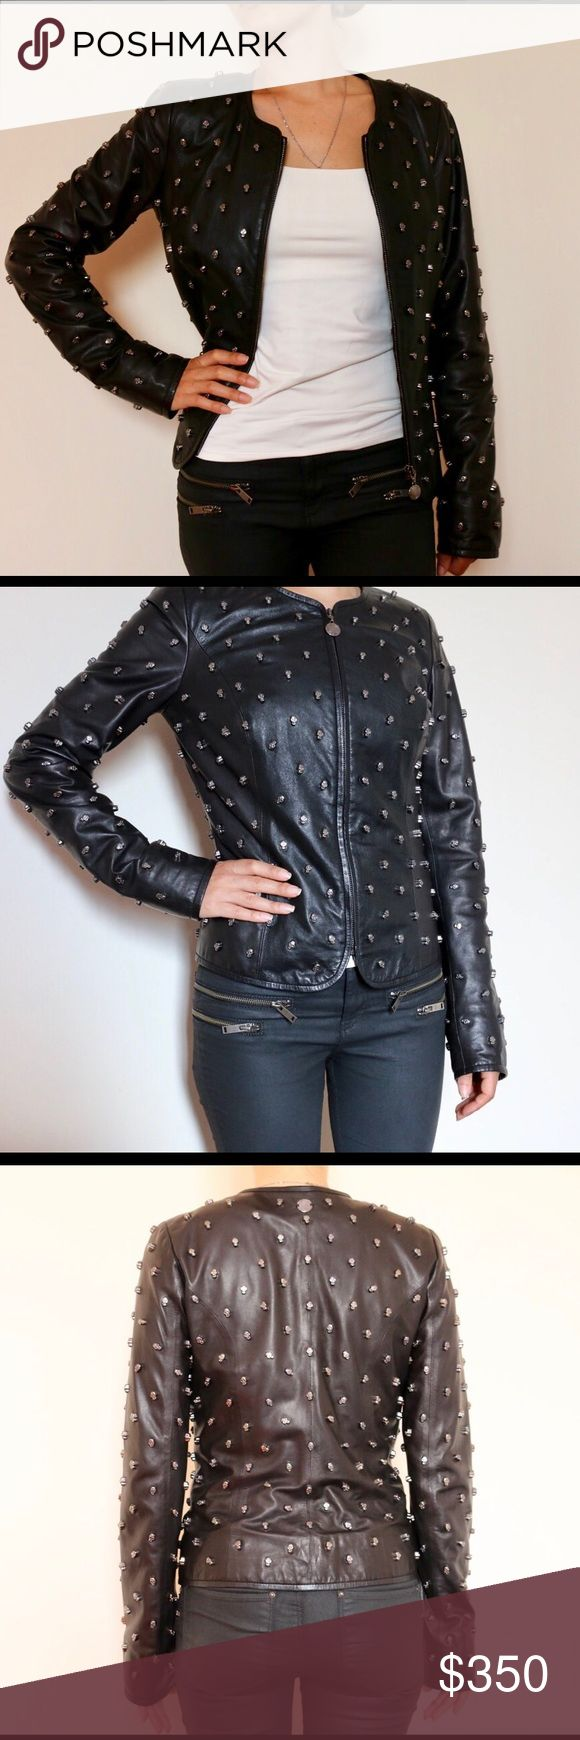 Italian Designer Leather Jacket with Skulls  Beautiful Leather Jacket, very cool looking! Leather is soft. It's hard to find something like this. Excellent like new condition!! Size XS Gian Mori Jackets & Coats